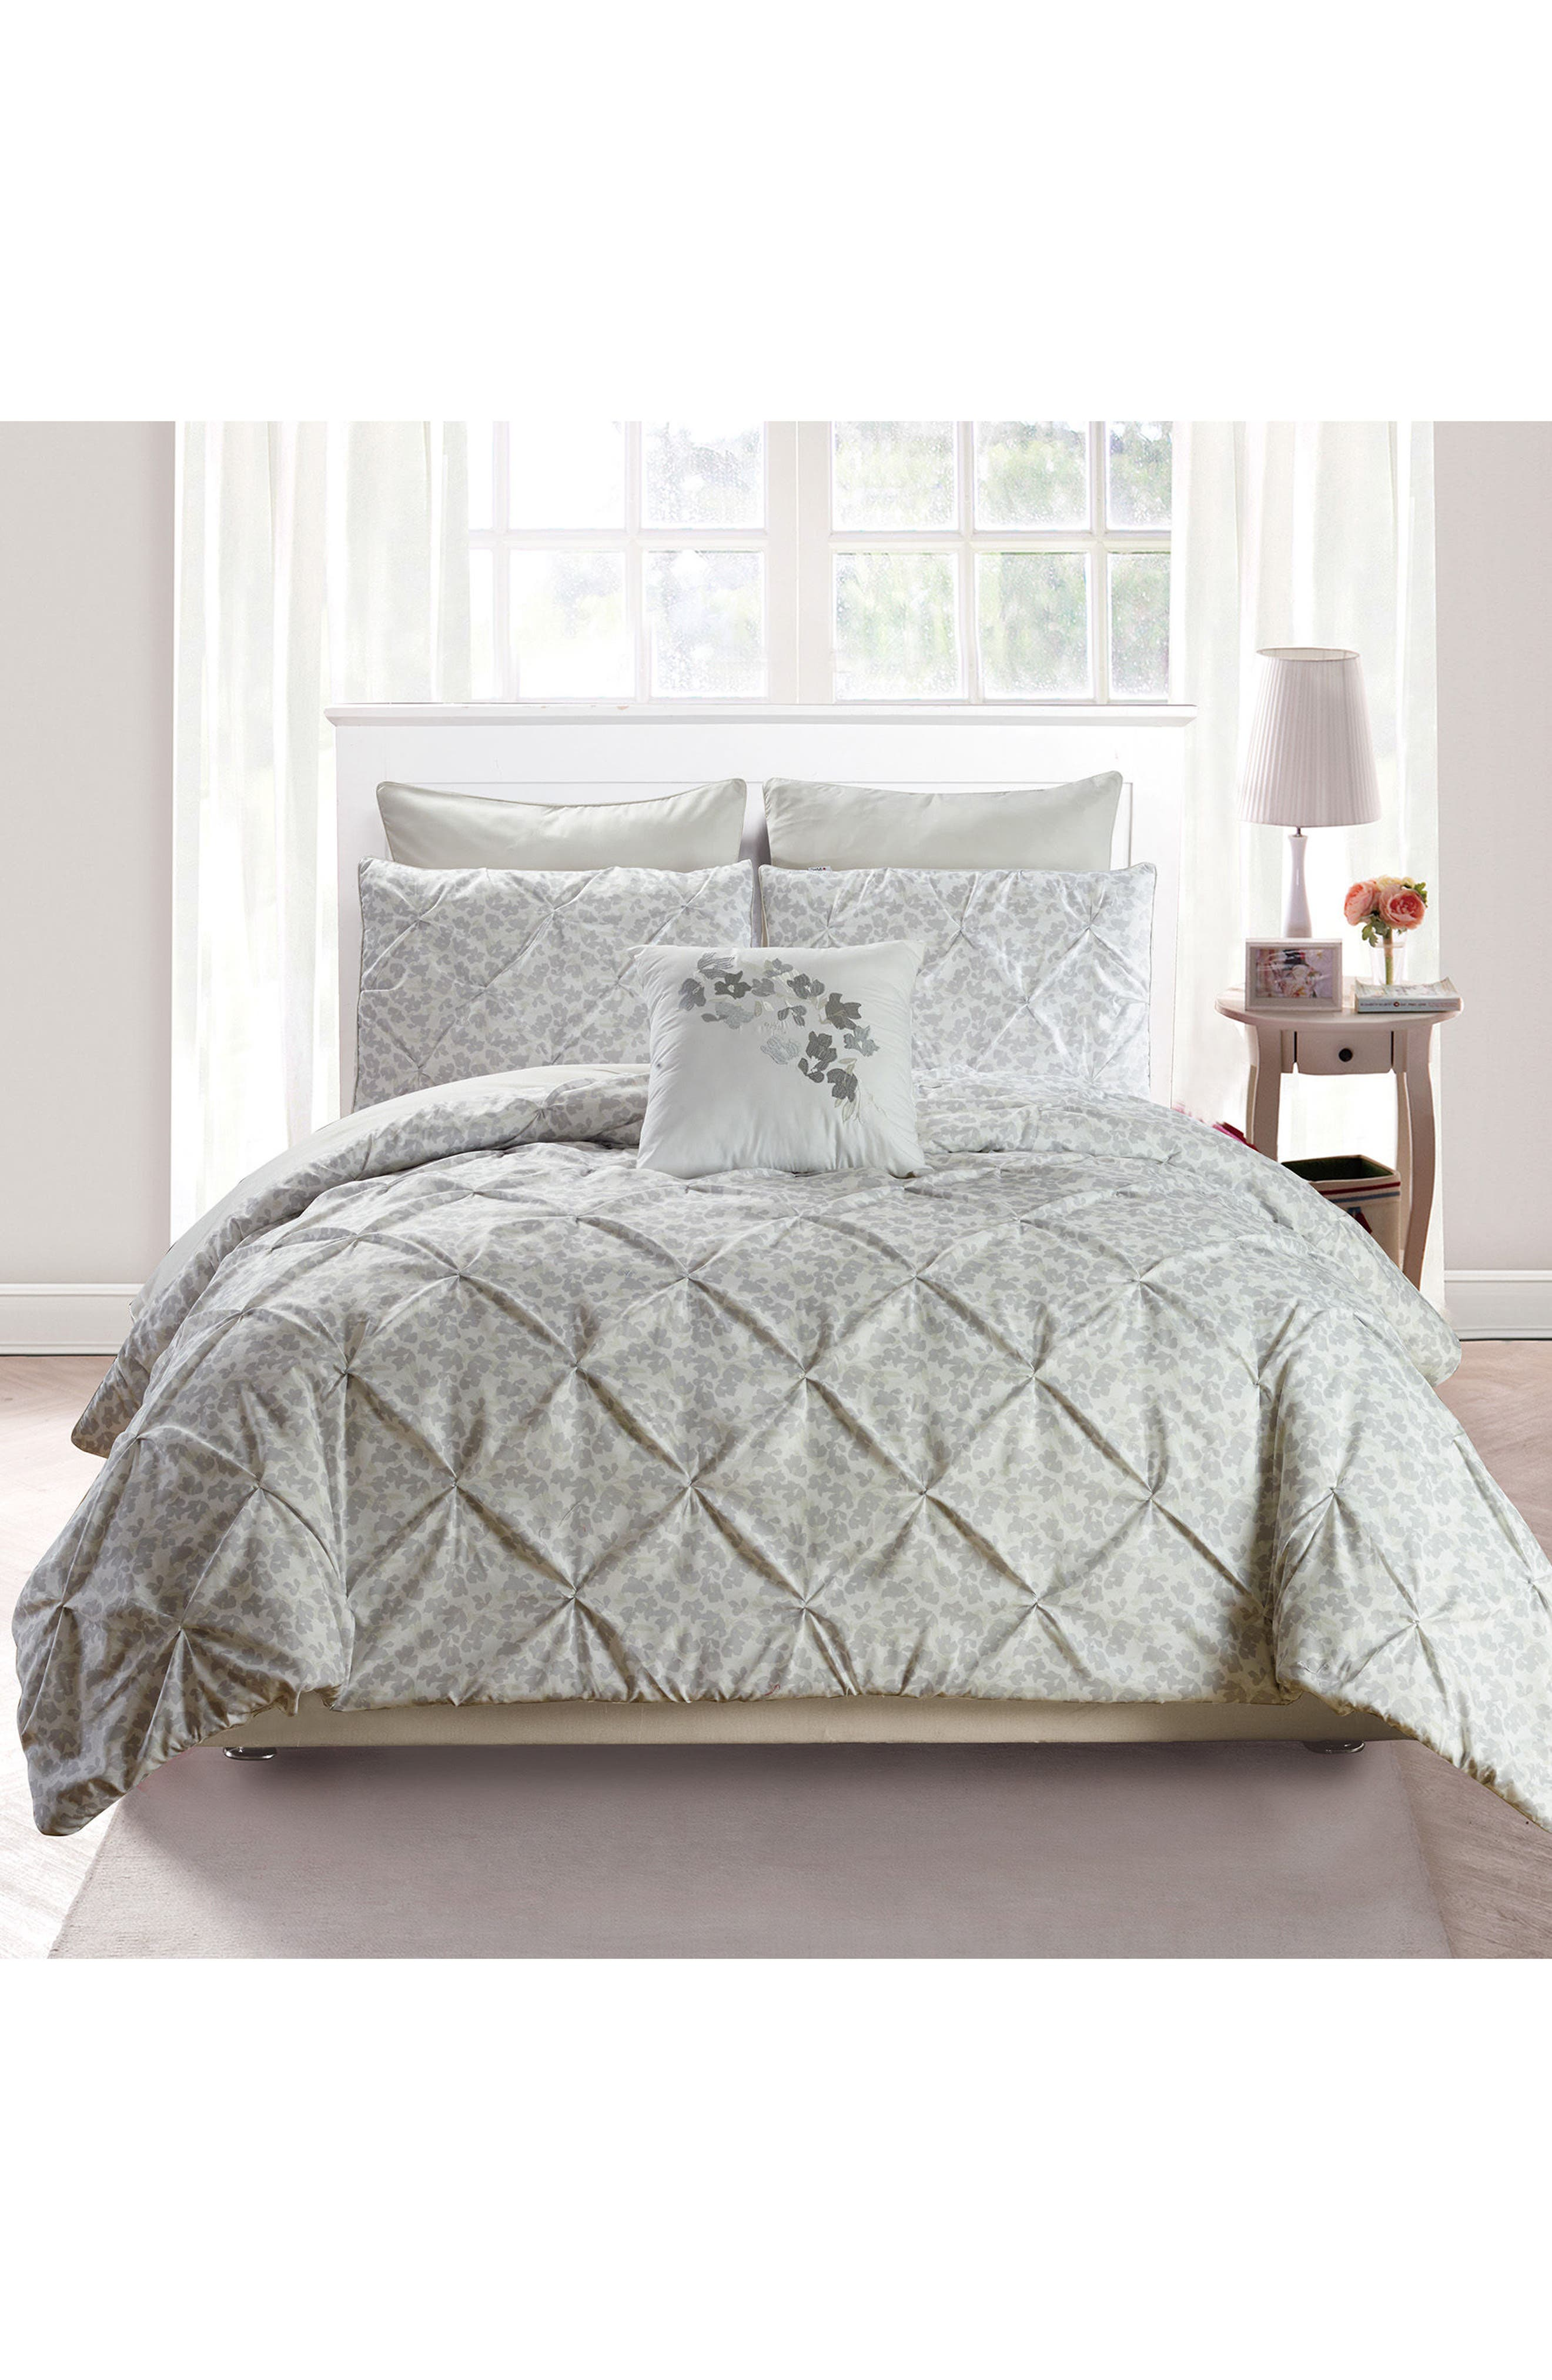 Adith 6-Piece King Comforter Set,                         Main,                         color, 020